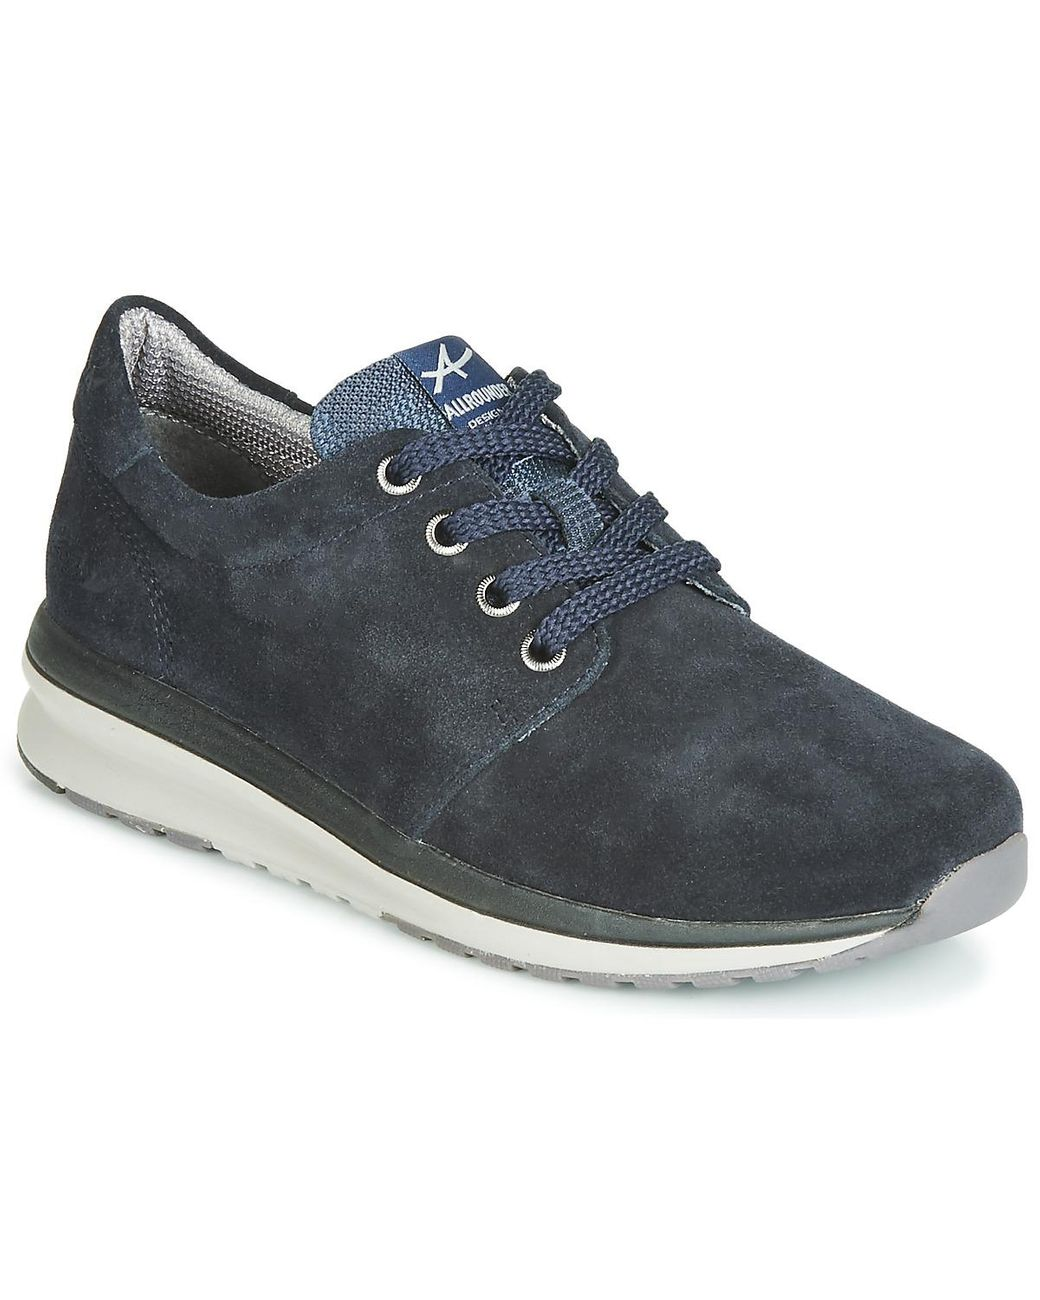 Mephisto Allrounder Womens Kyra Lace Up Sneaker Shoes